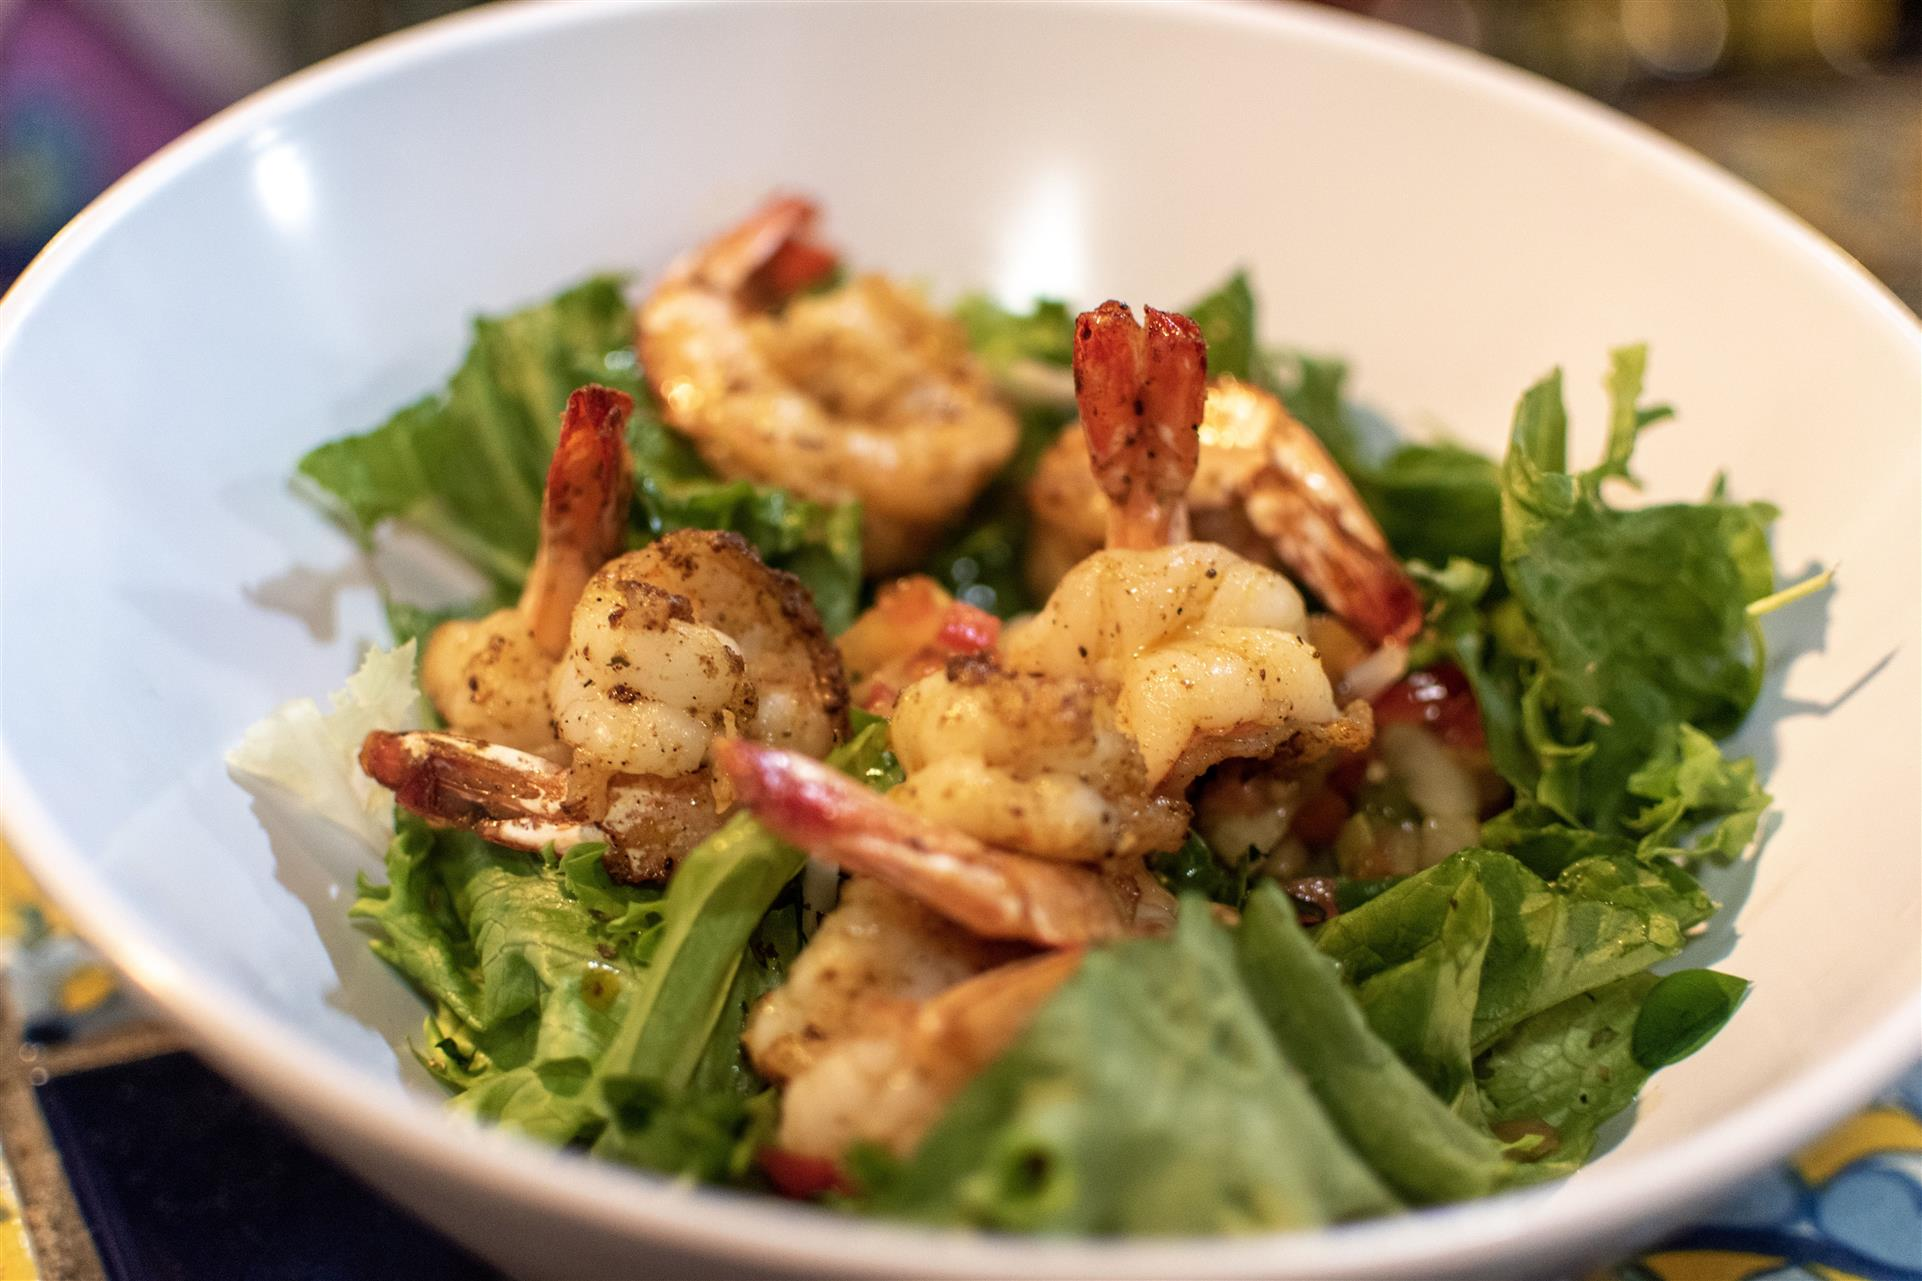 grilled shrimp over a bed of lettuce in a bowl